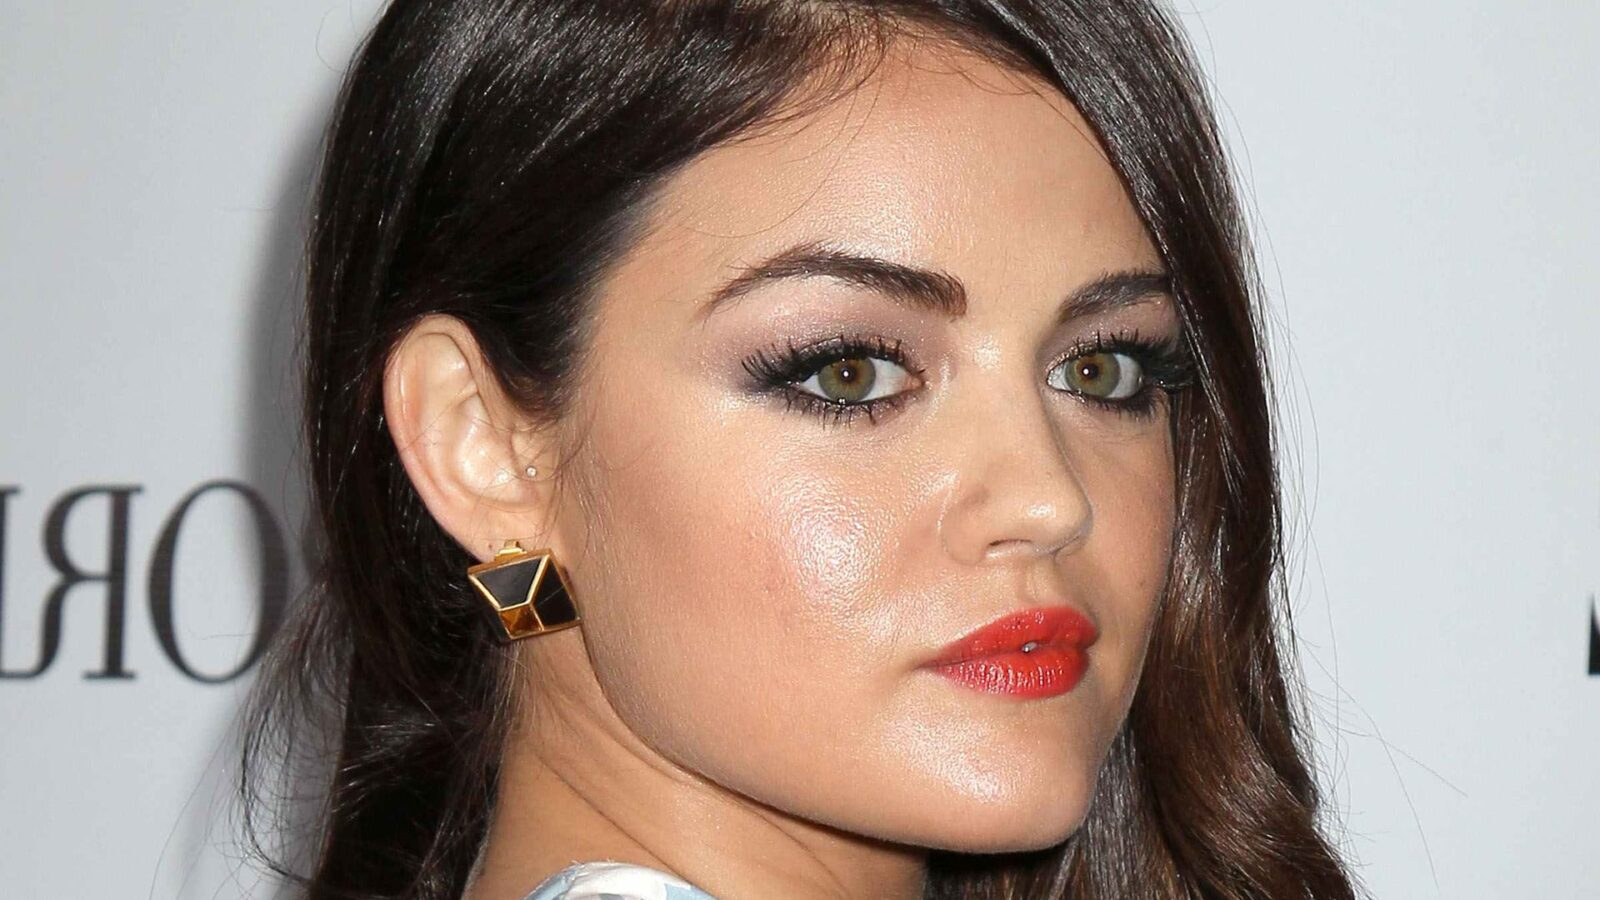 Lips Wallpaper Hd Lucy Hale Hd Wallpapers Free Download